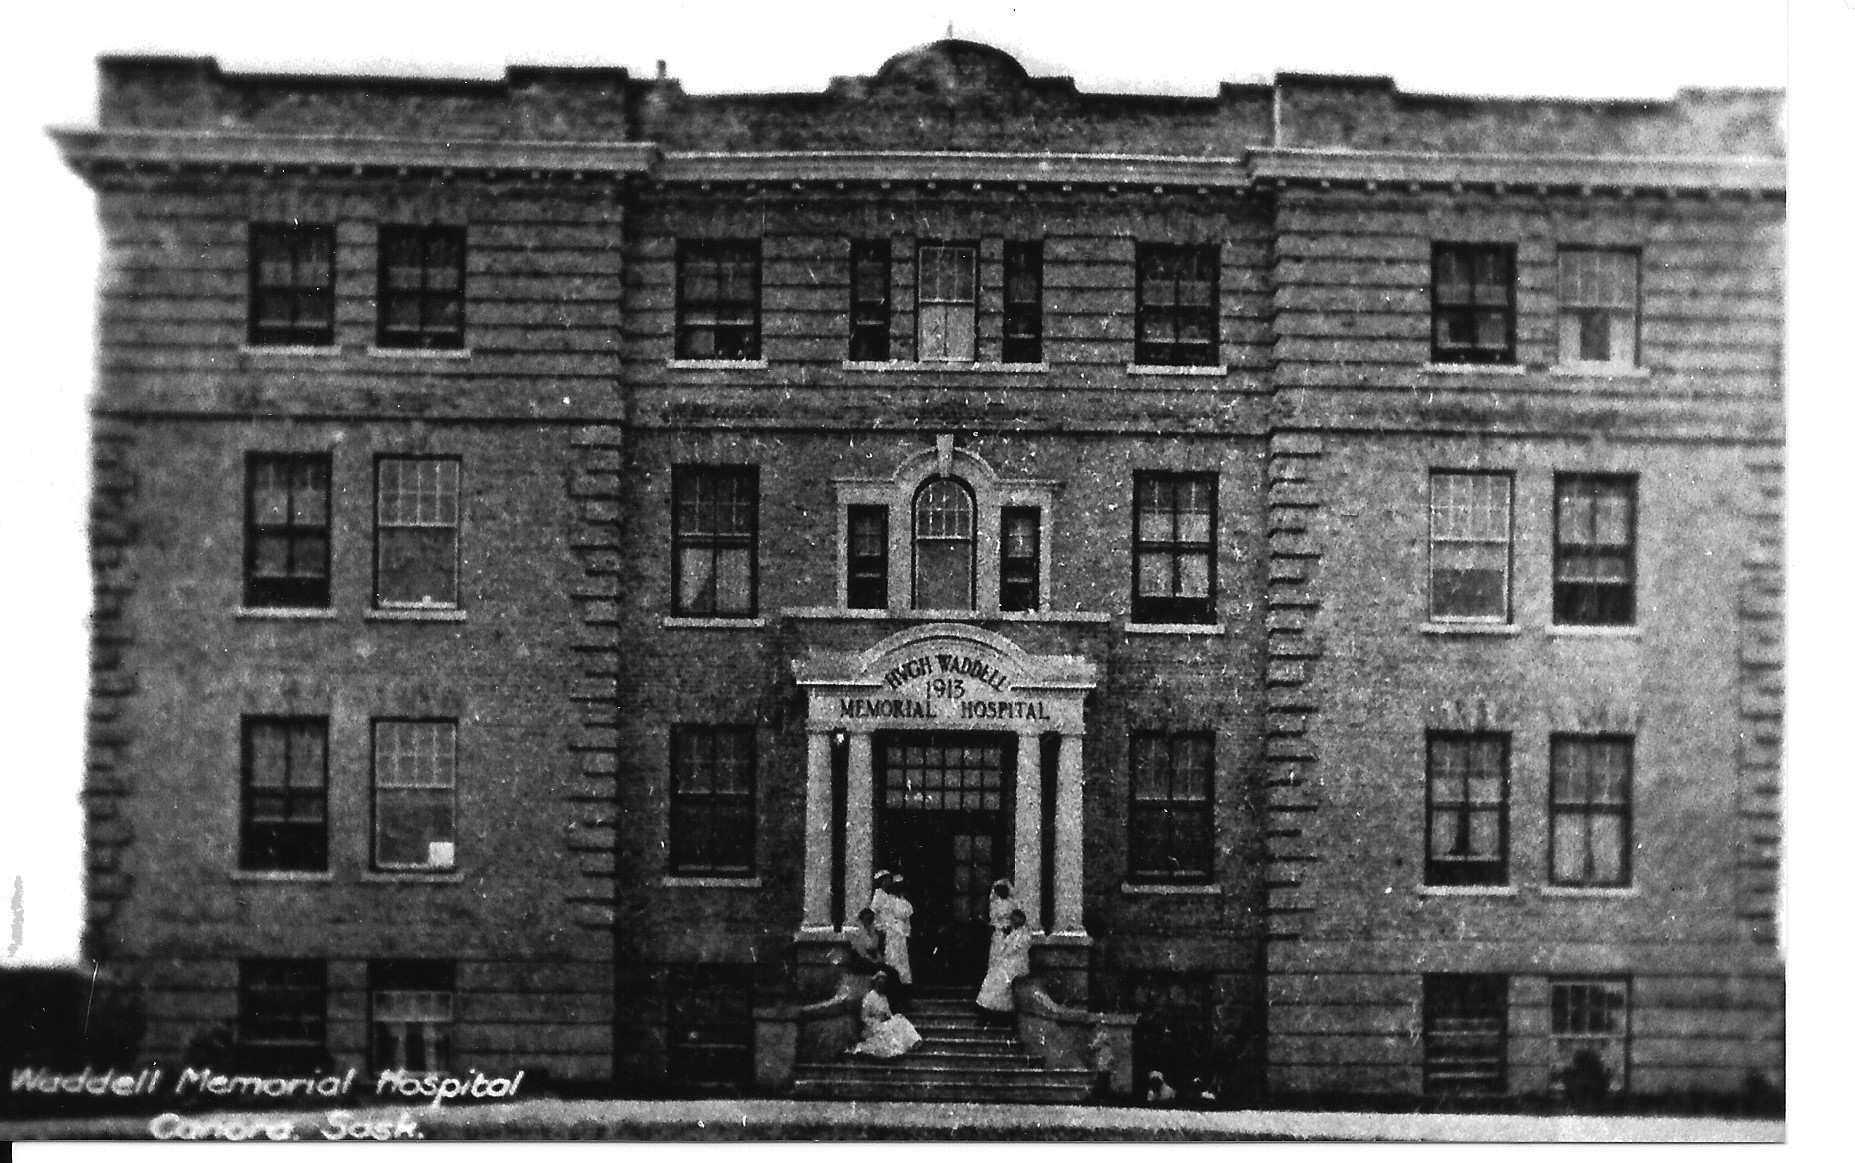 Historical PHOTO of Hugh Waddel Memorial Hospital in Canora Saskatchewan